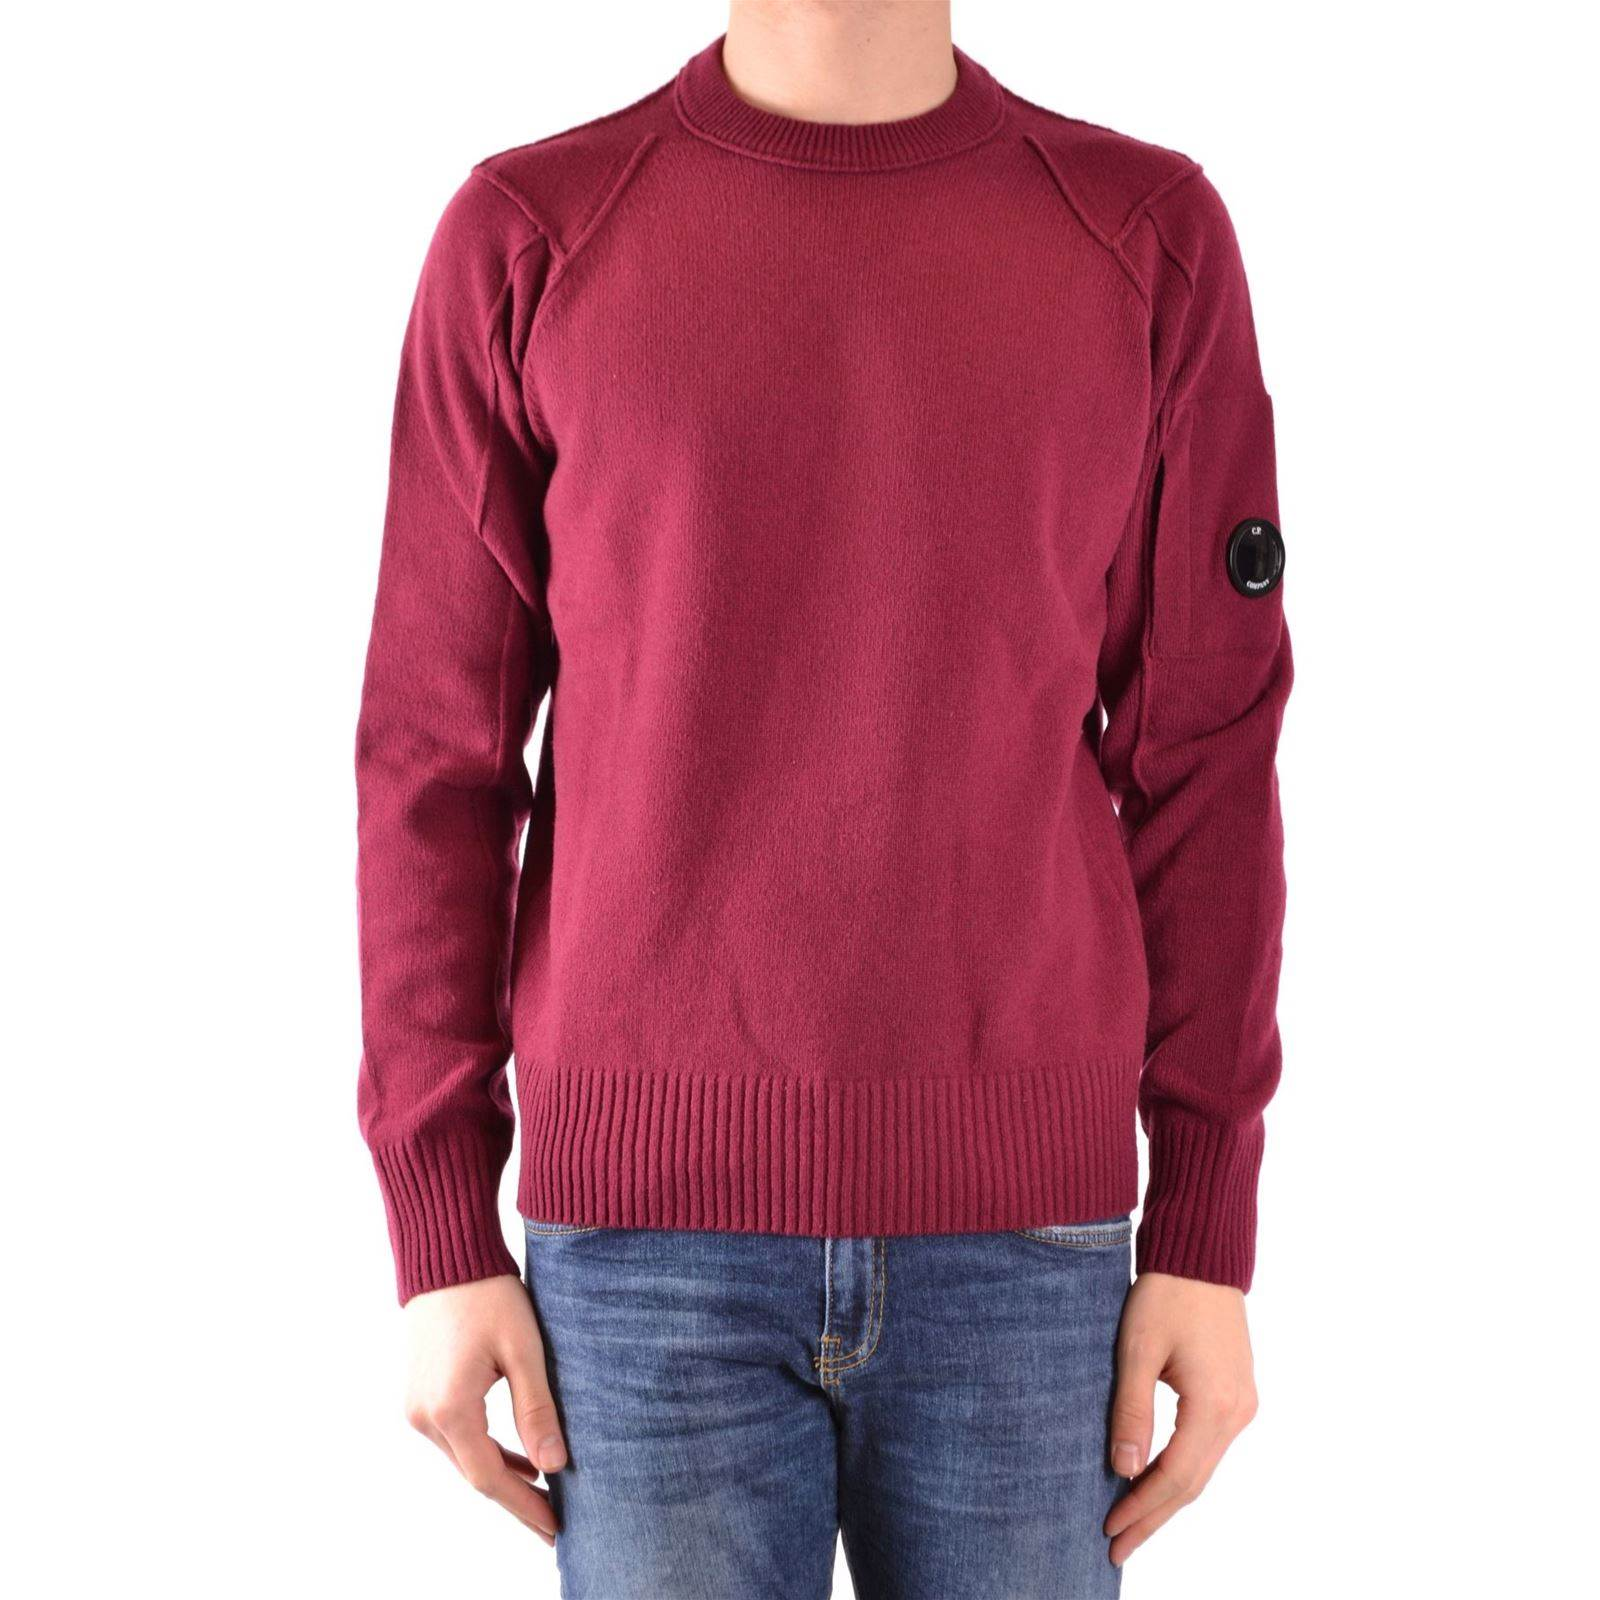 Cp V Homme PullBordeaux Cp Company Homme Company PullBordeaux H2ED9IWYe